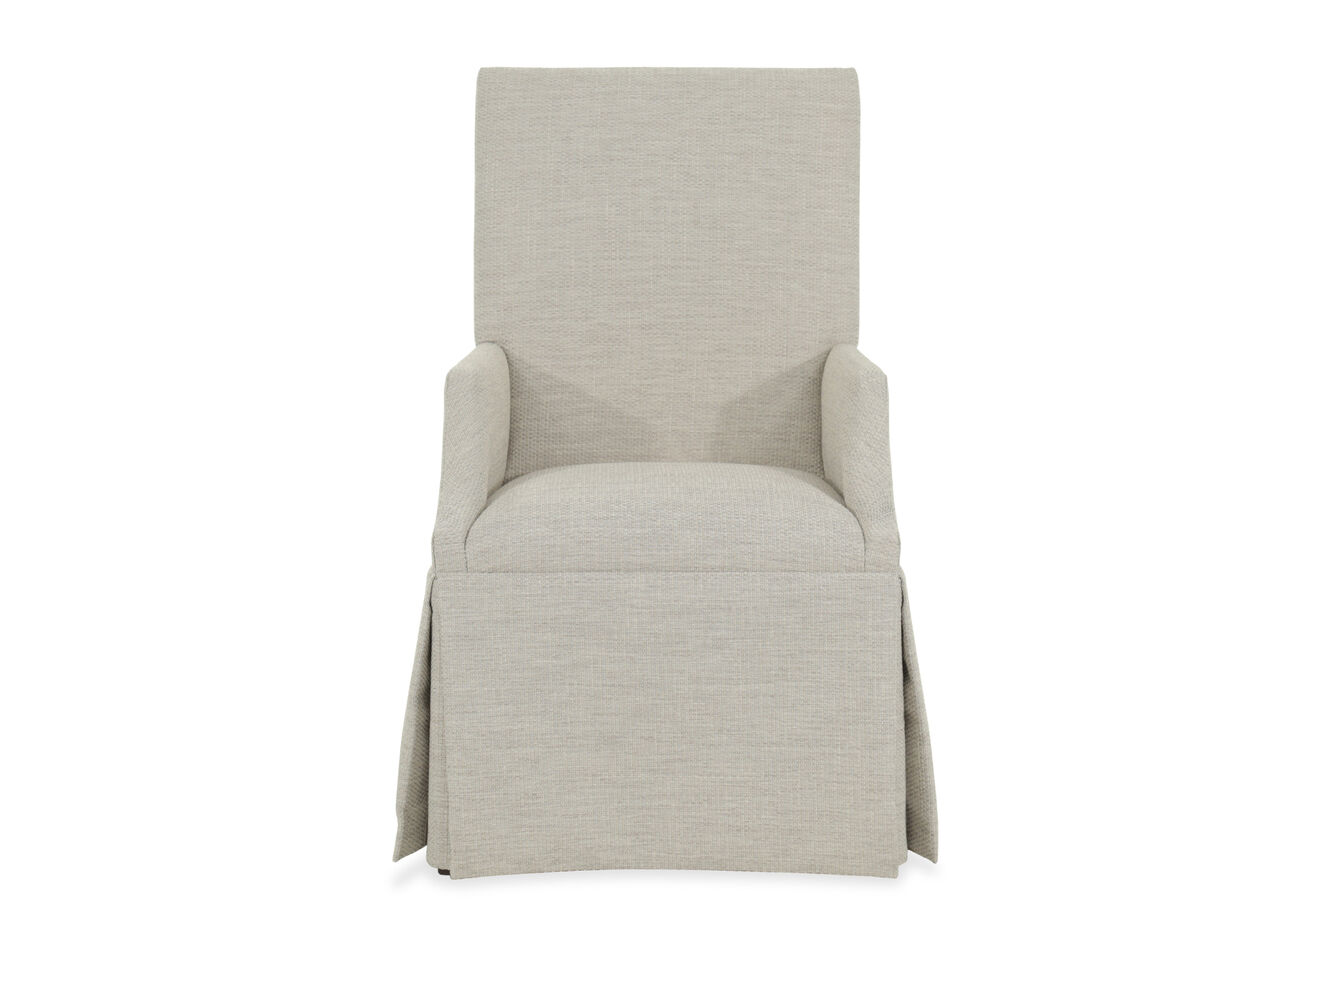 Upholstered 25 Quot Skirted Arm Chair In Beige Mathis